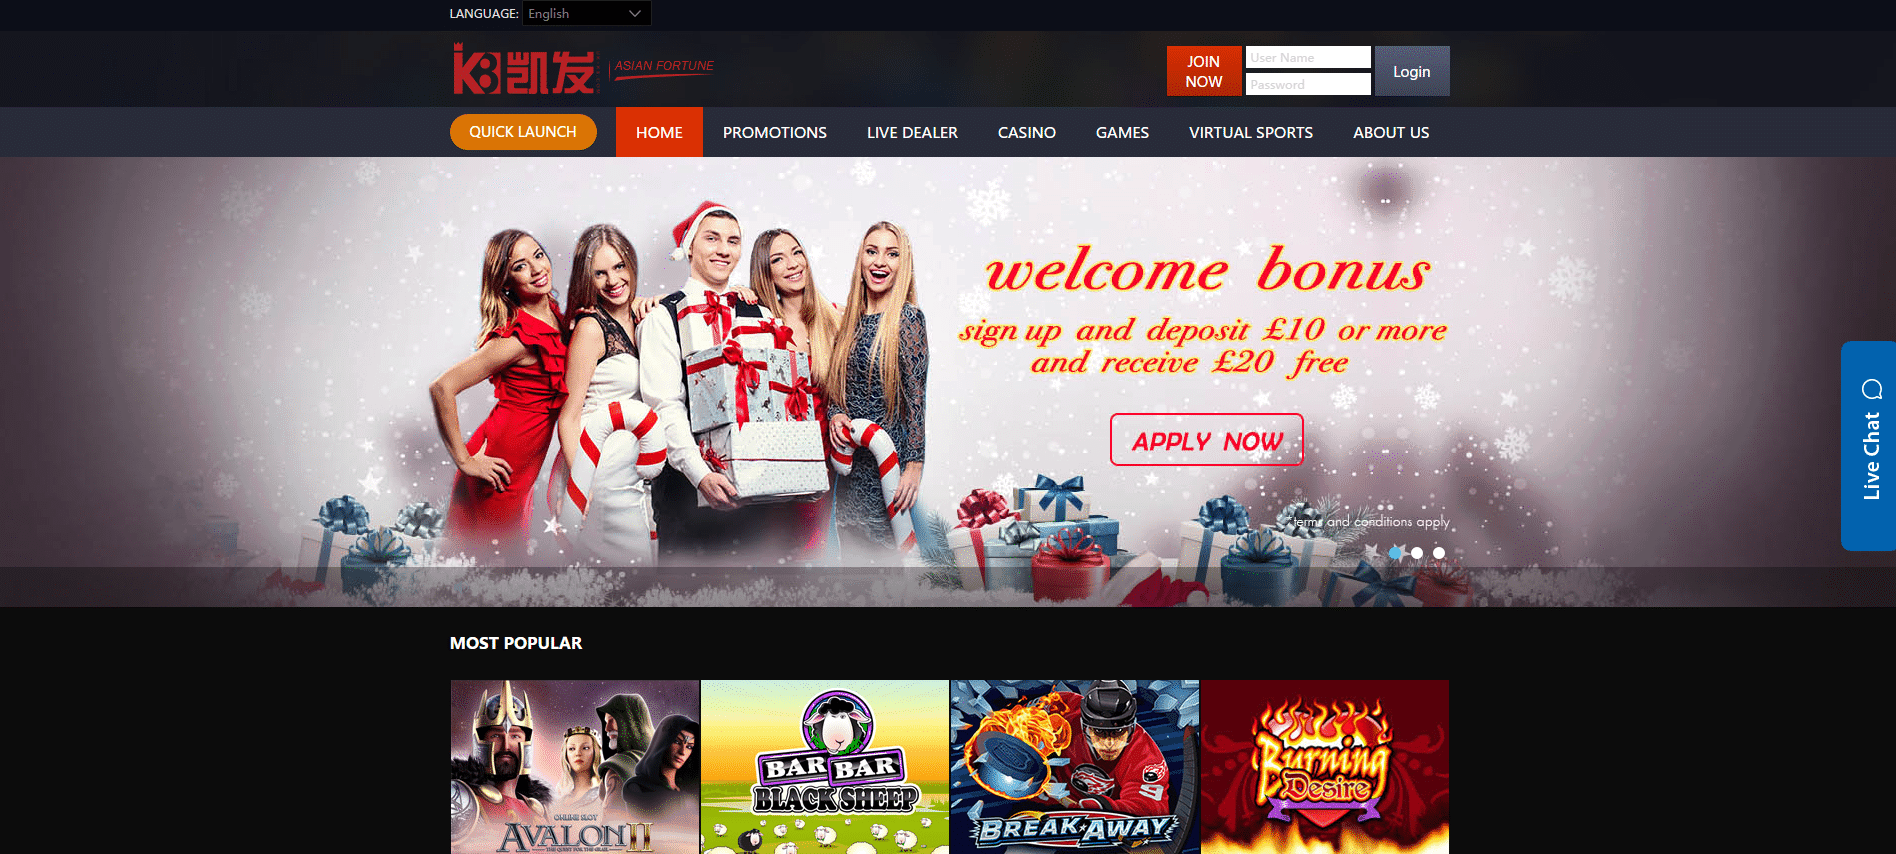 Casinos online asia casino subtitles